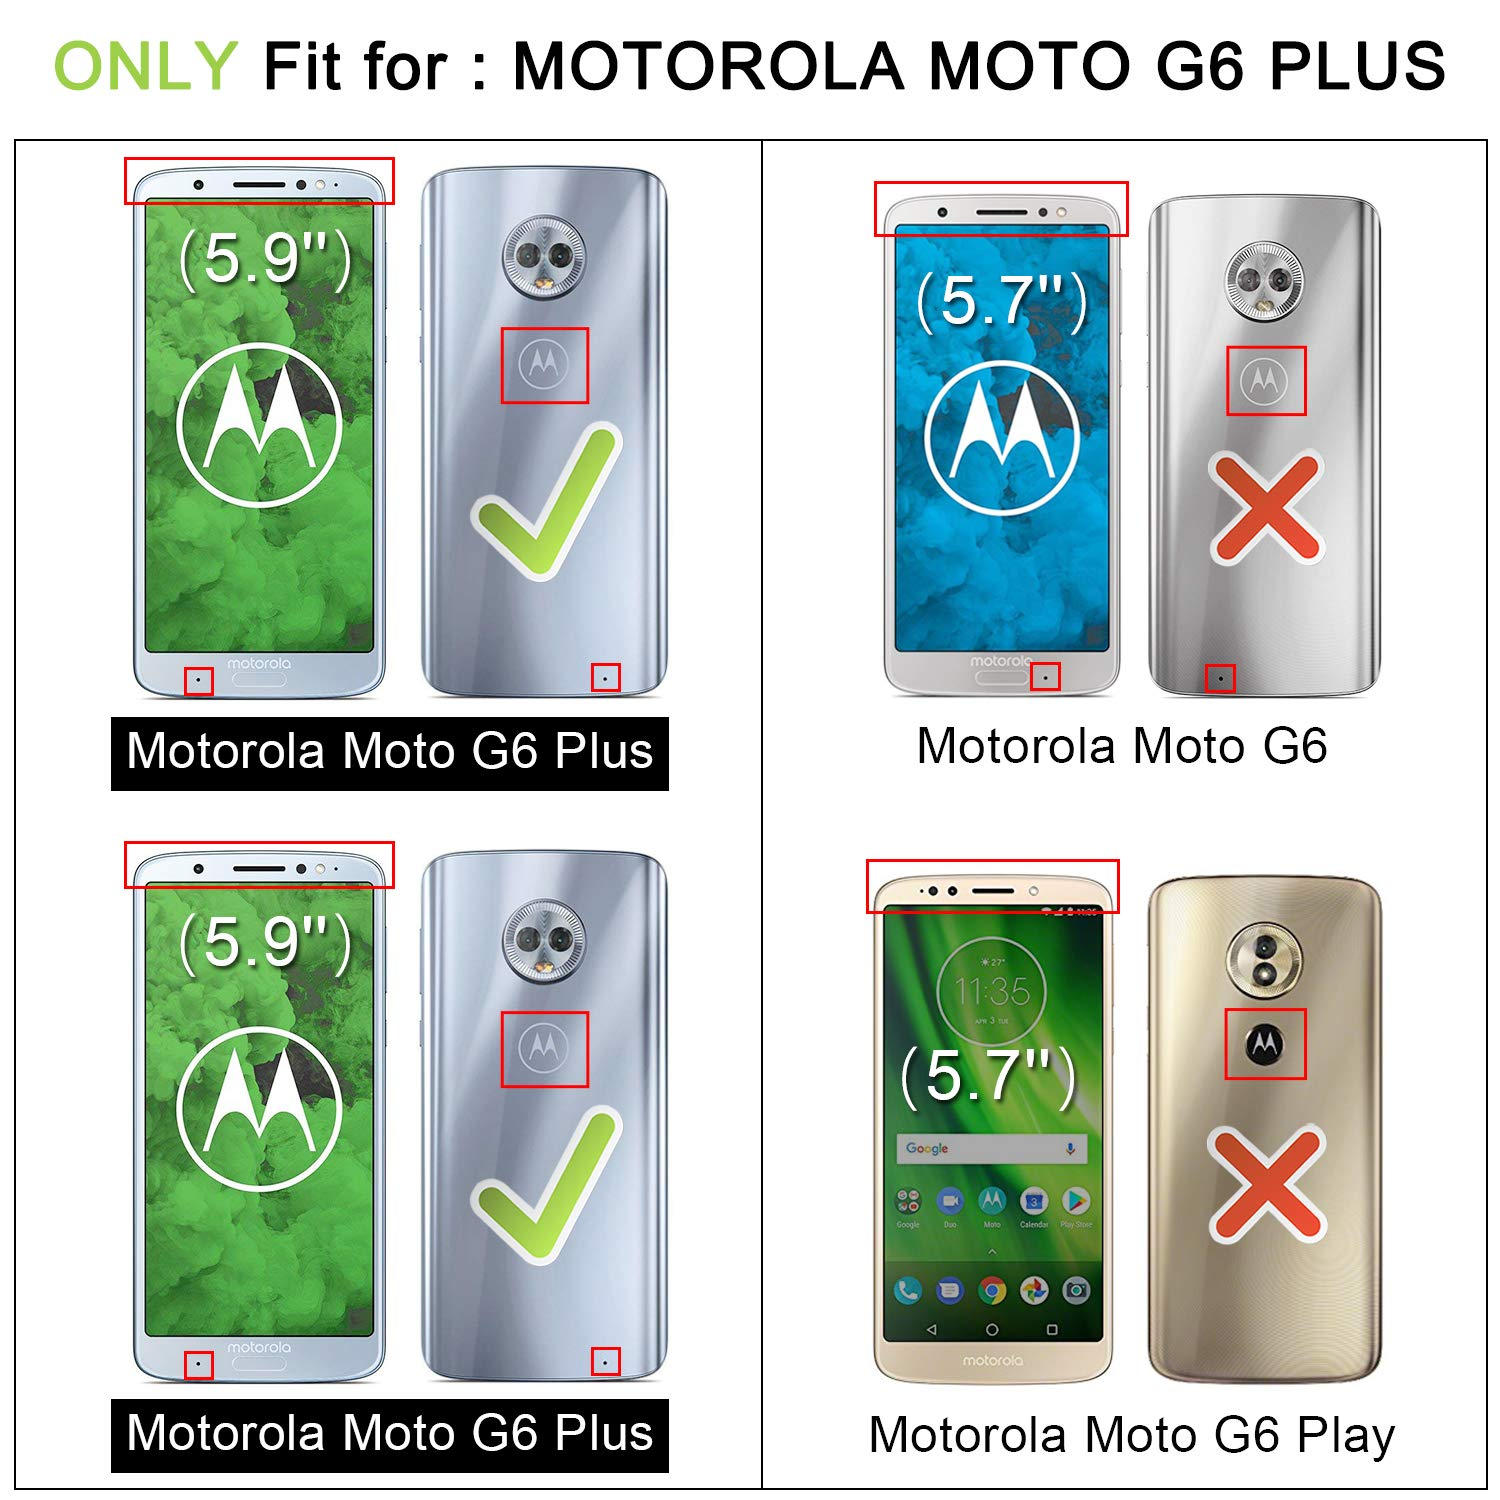 HOOMIL Motorola Moto G6 Plus Case Premium Leather Case for Moto G6 Plus  Phone Cover (Black)